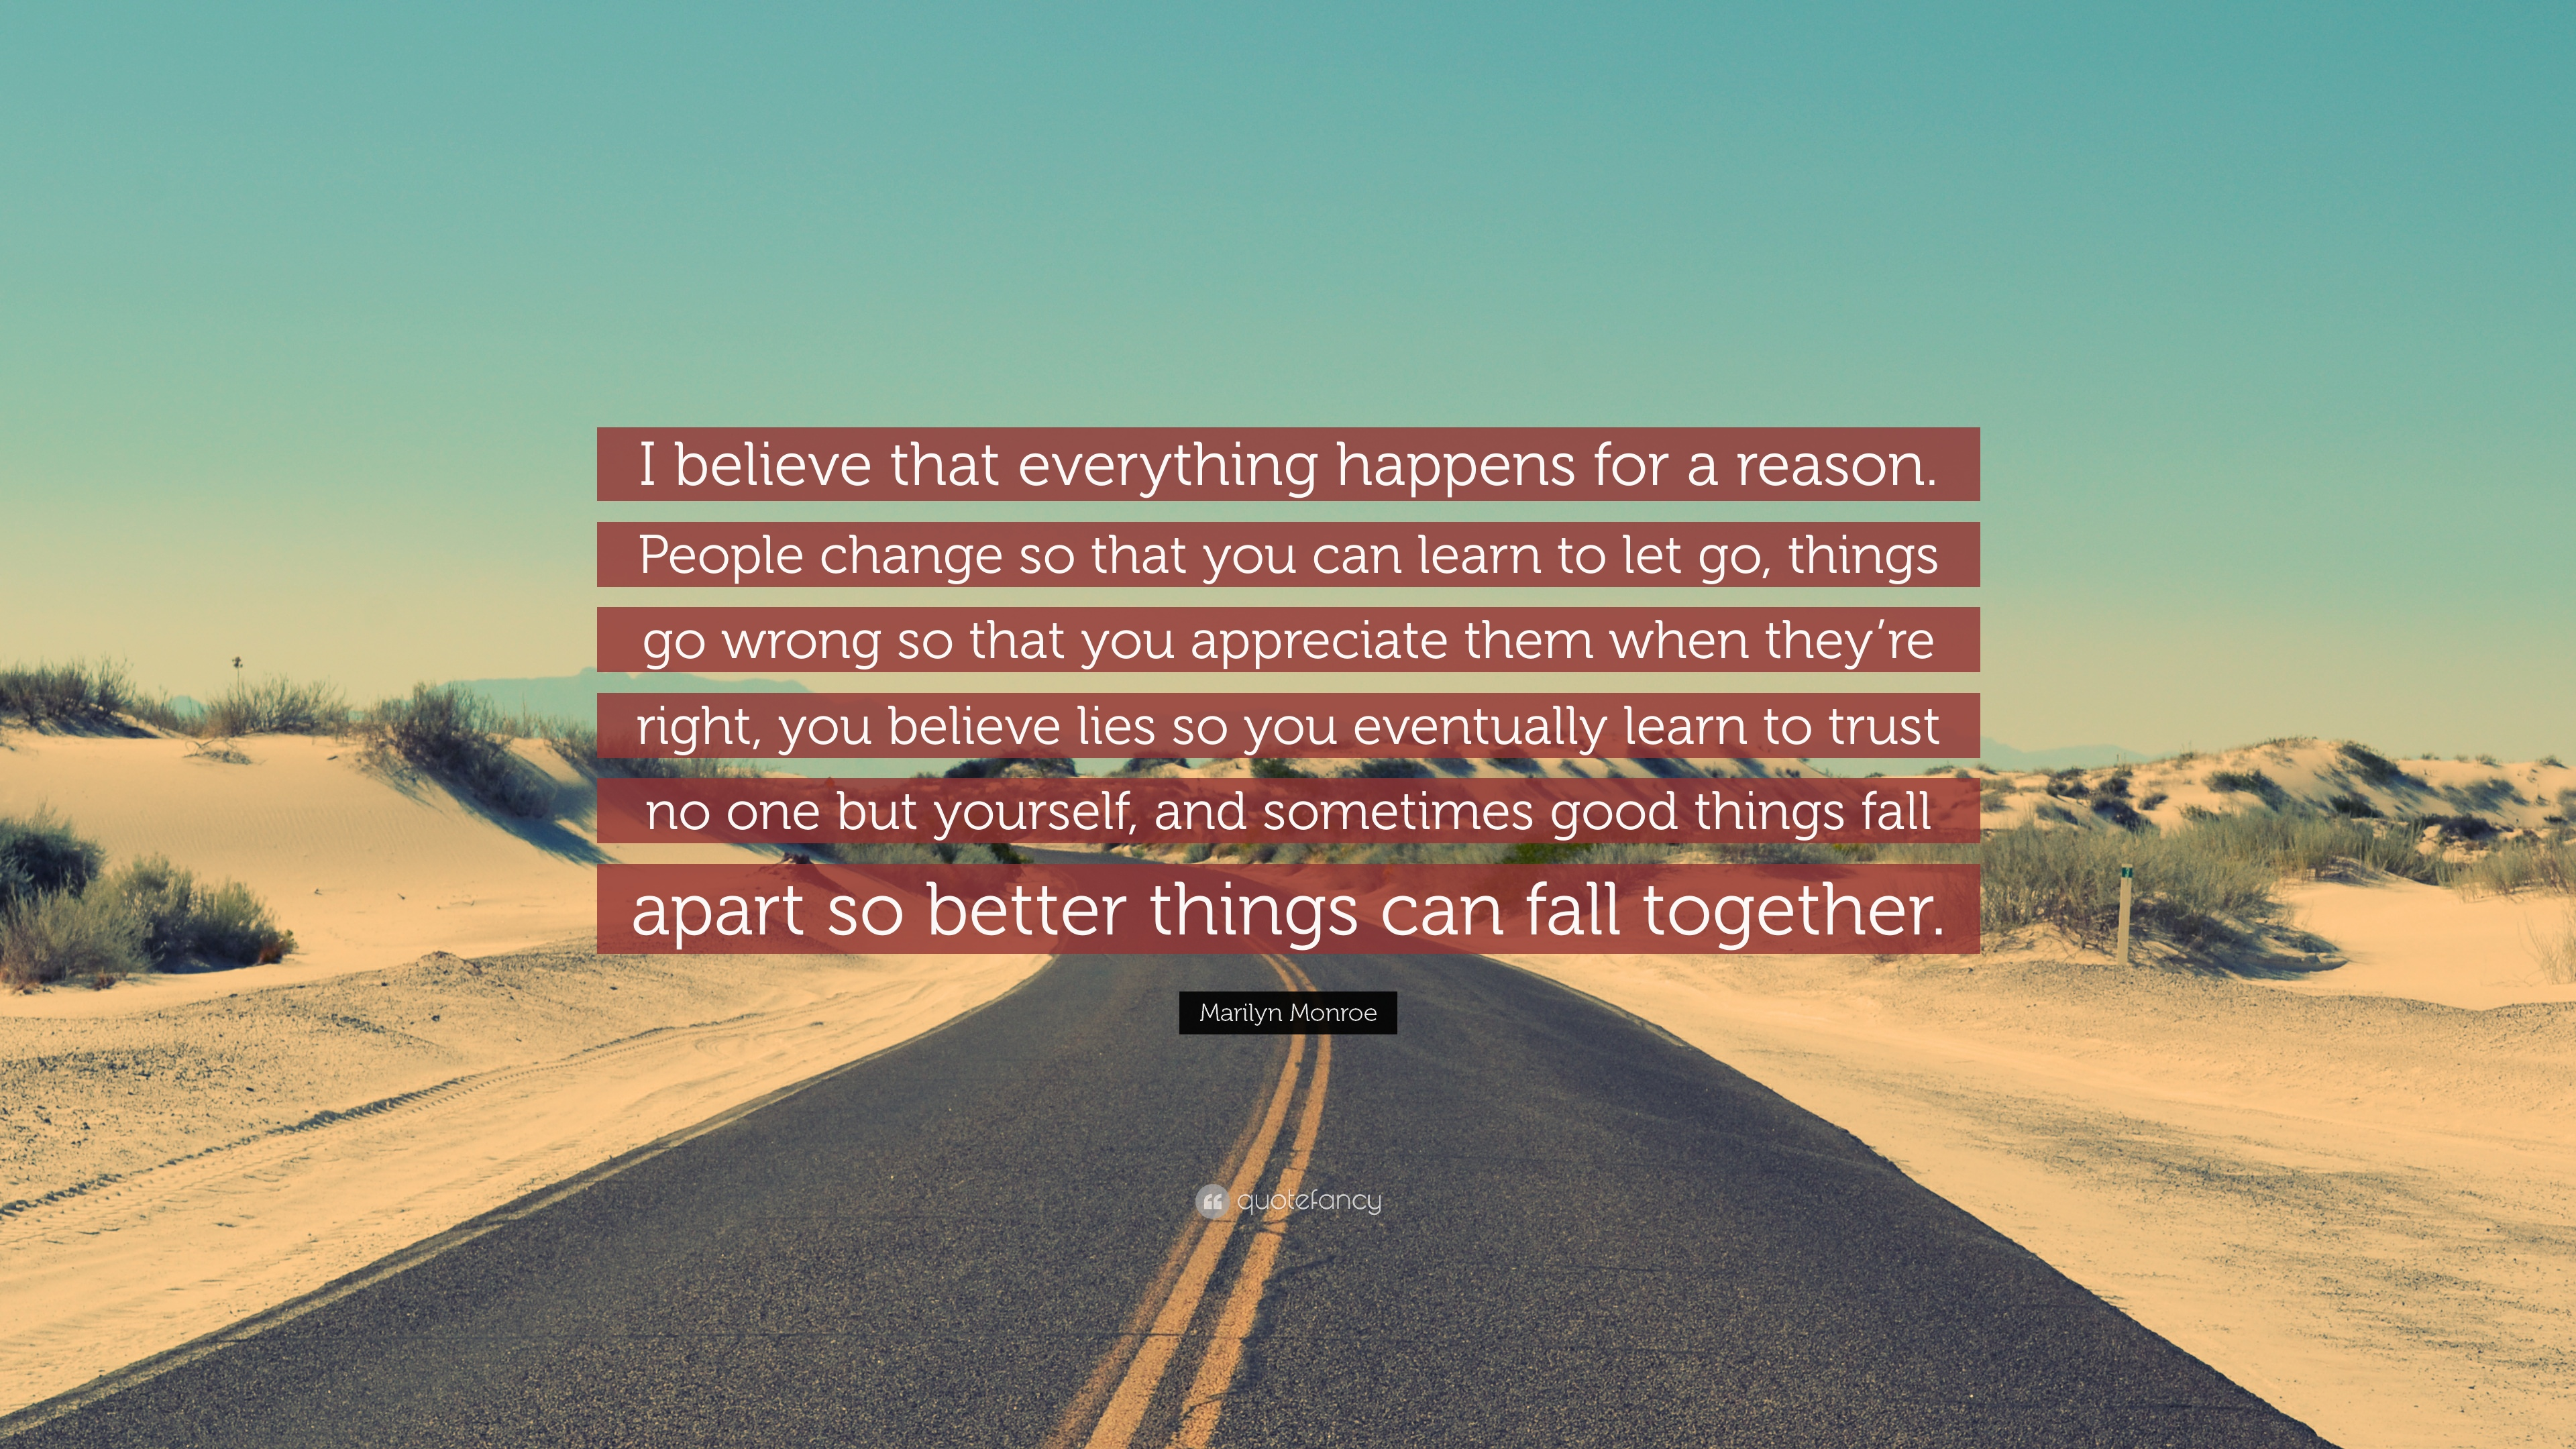 i believe everything happens for a reason essay An excerpt from you have chosen to remember: a journey of self-awareness, peace of mind and joy by james blanchard cisneros little by little, you hear people changing the way they talk more and more, you hear people saying everything happens for a reason.